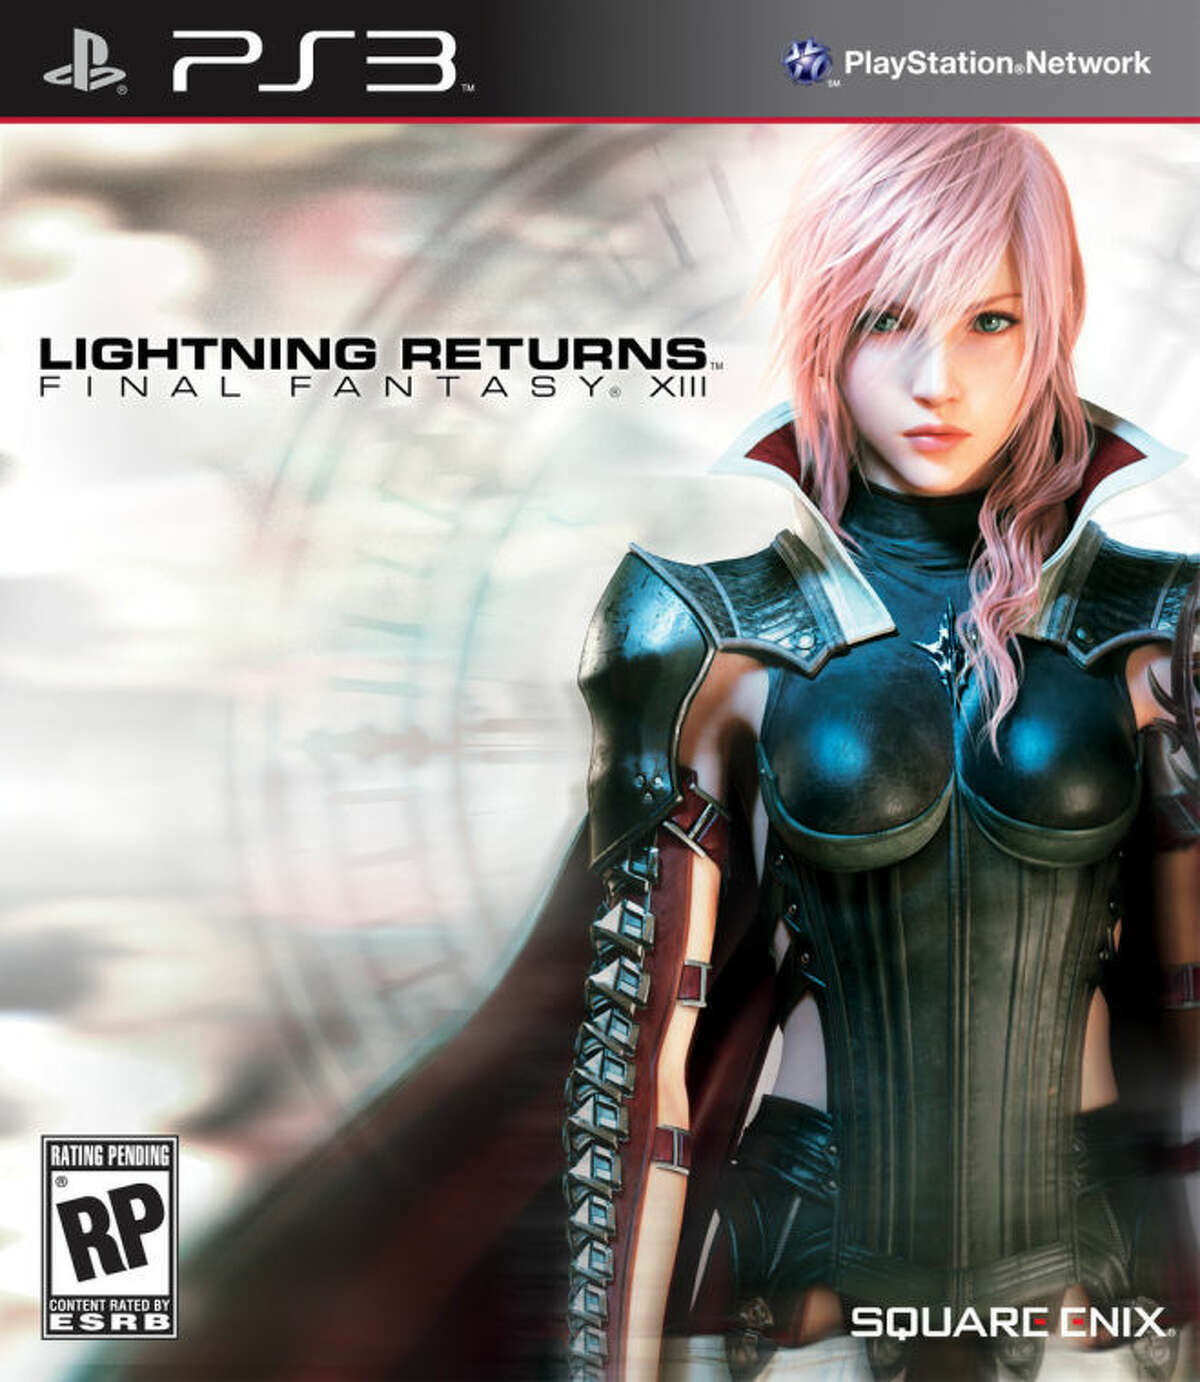 This image released by Square Enix shows the cover art for the video game